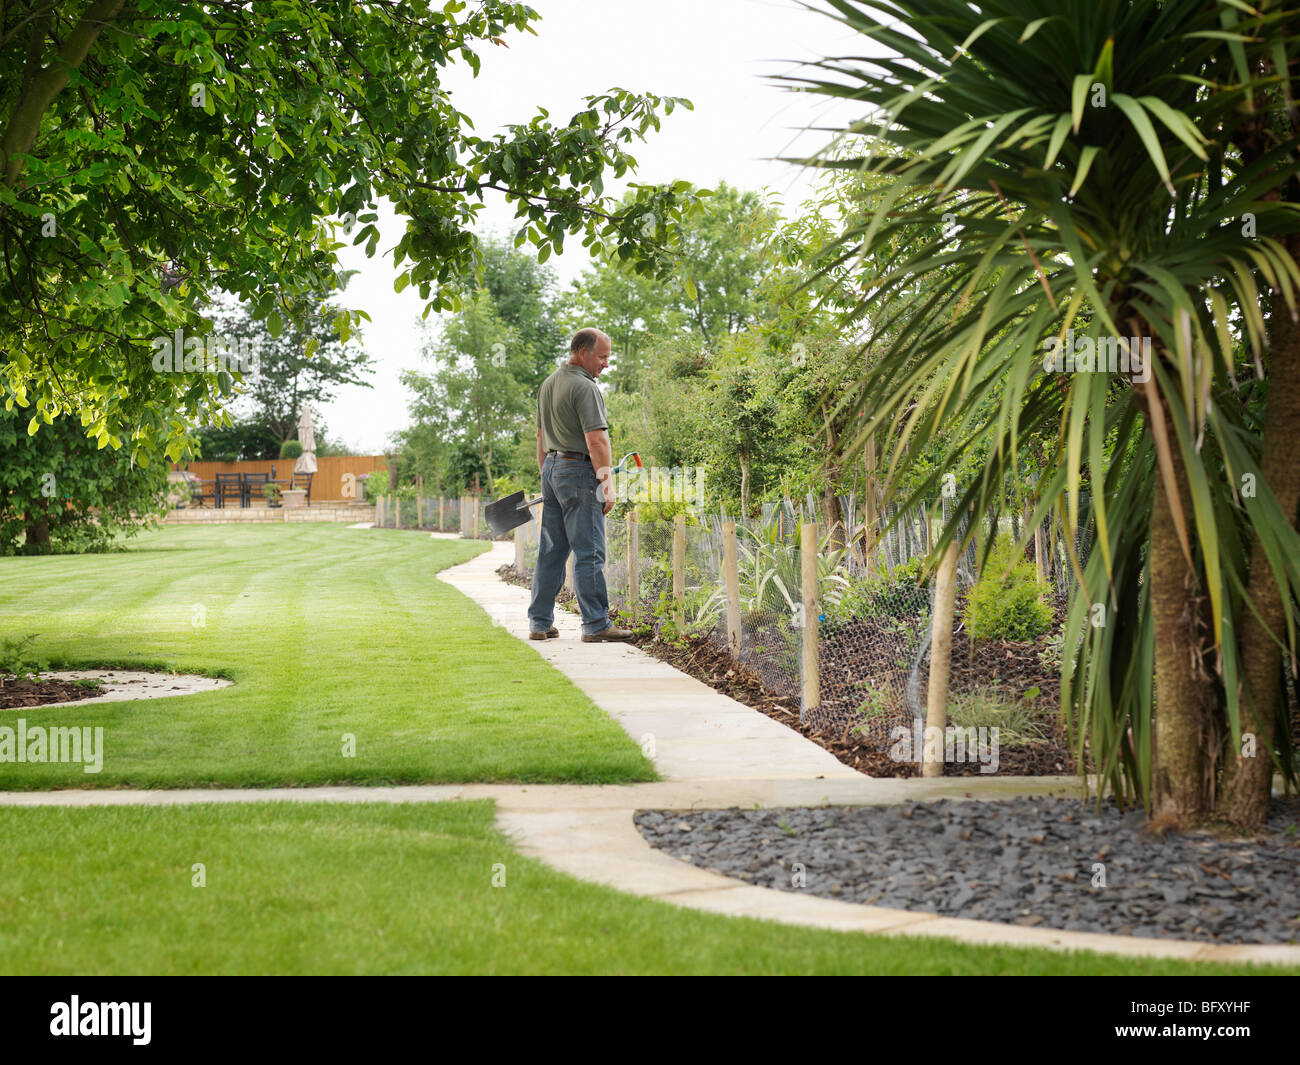 Gardener Inspecting Shrubs In Border - Stock Image